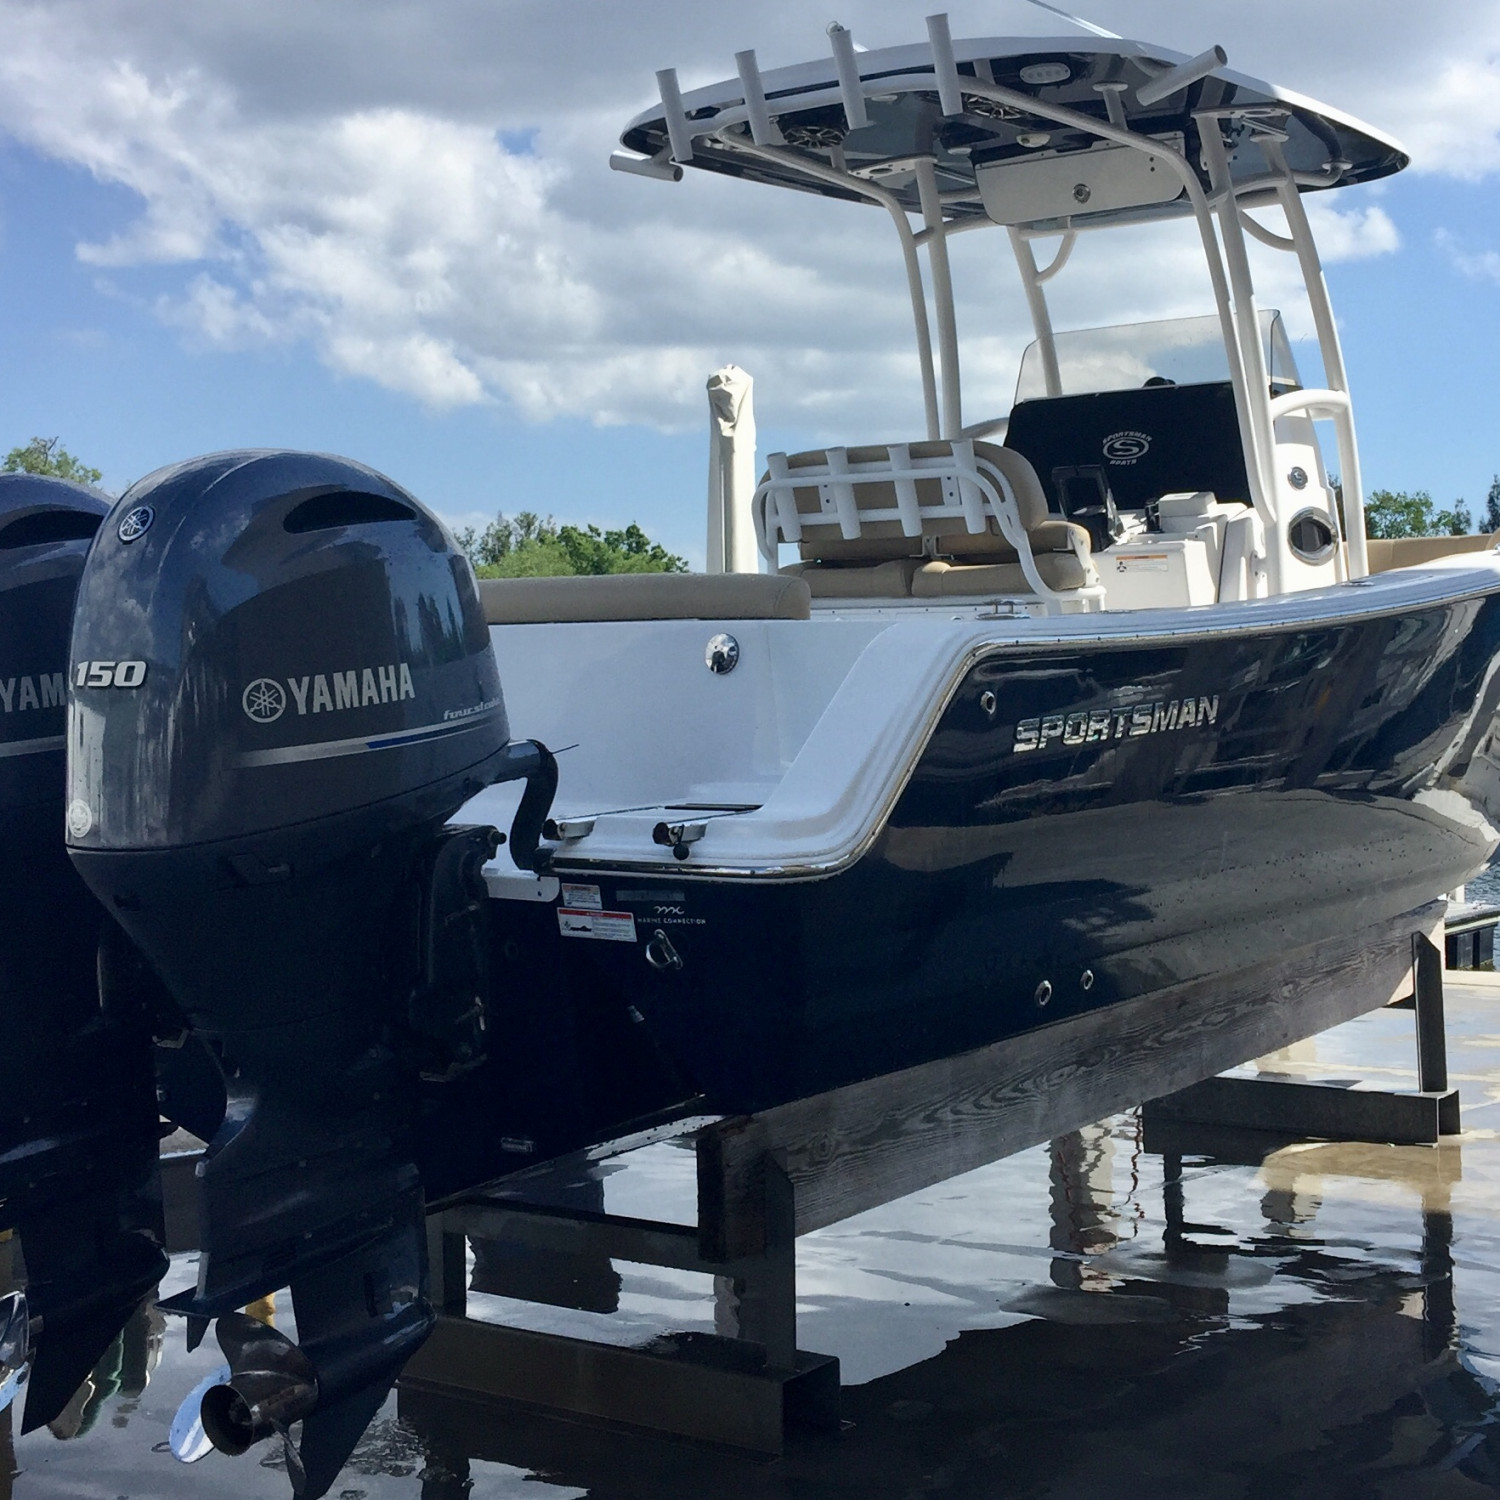 Title: Delivery Day - On board their Sportsman Heritage 251 Center Console - Location: Tarpon Springs, FL. Participating in the Photo Contest #SportsmanApril2018